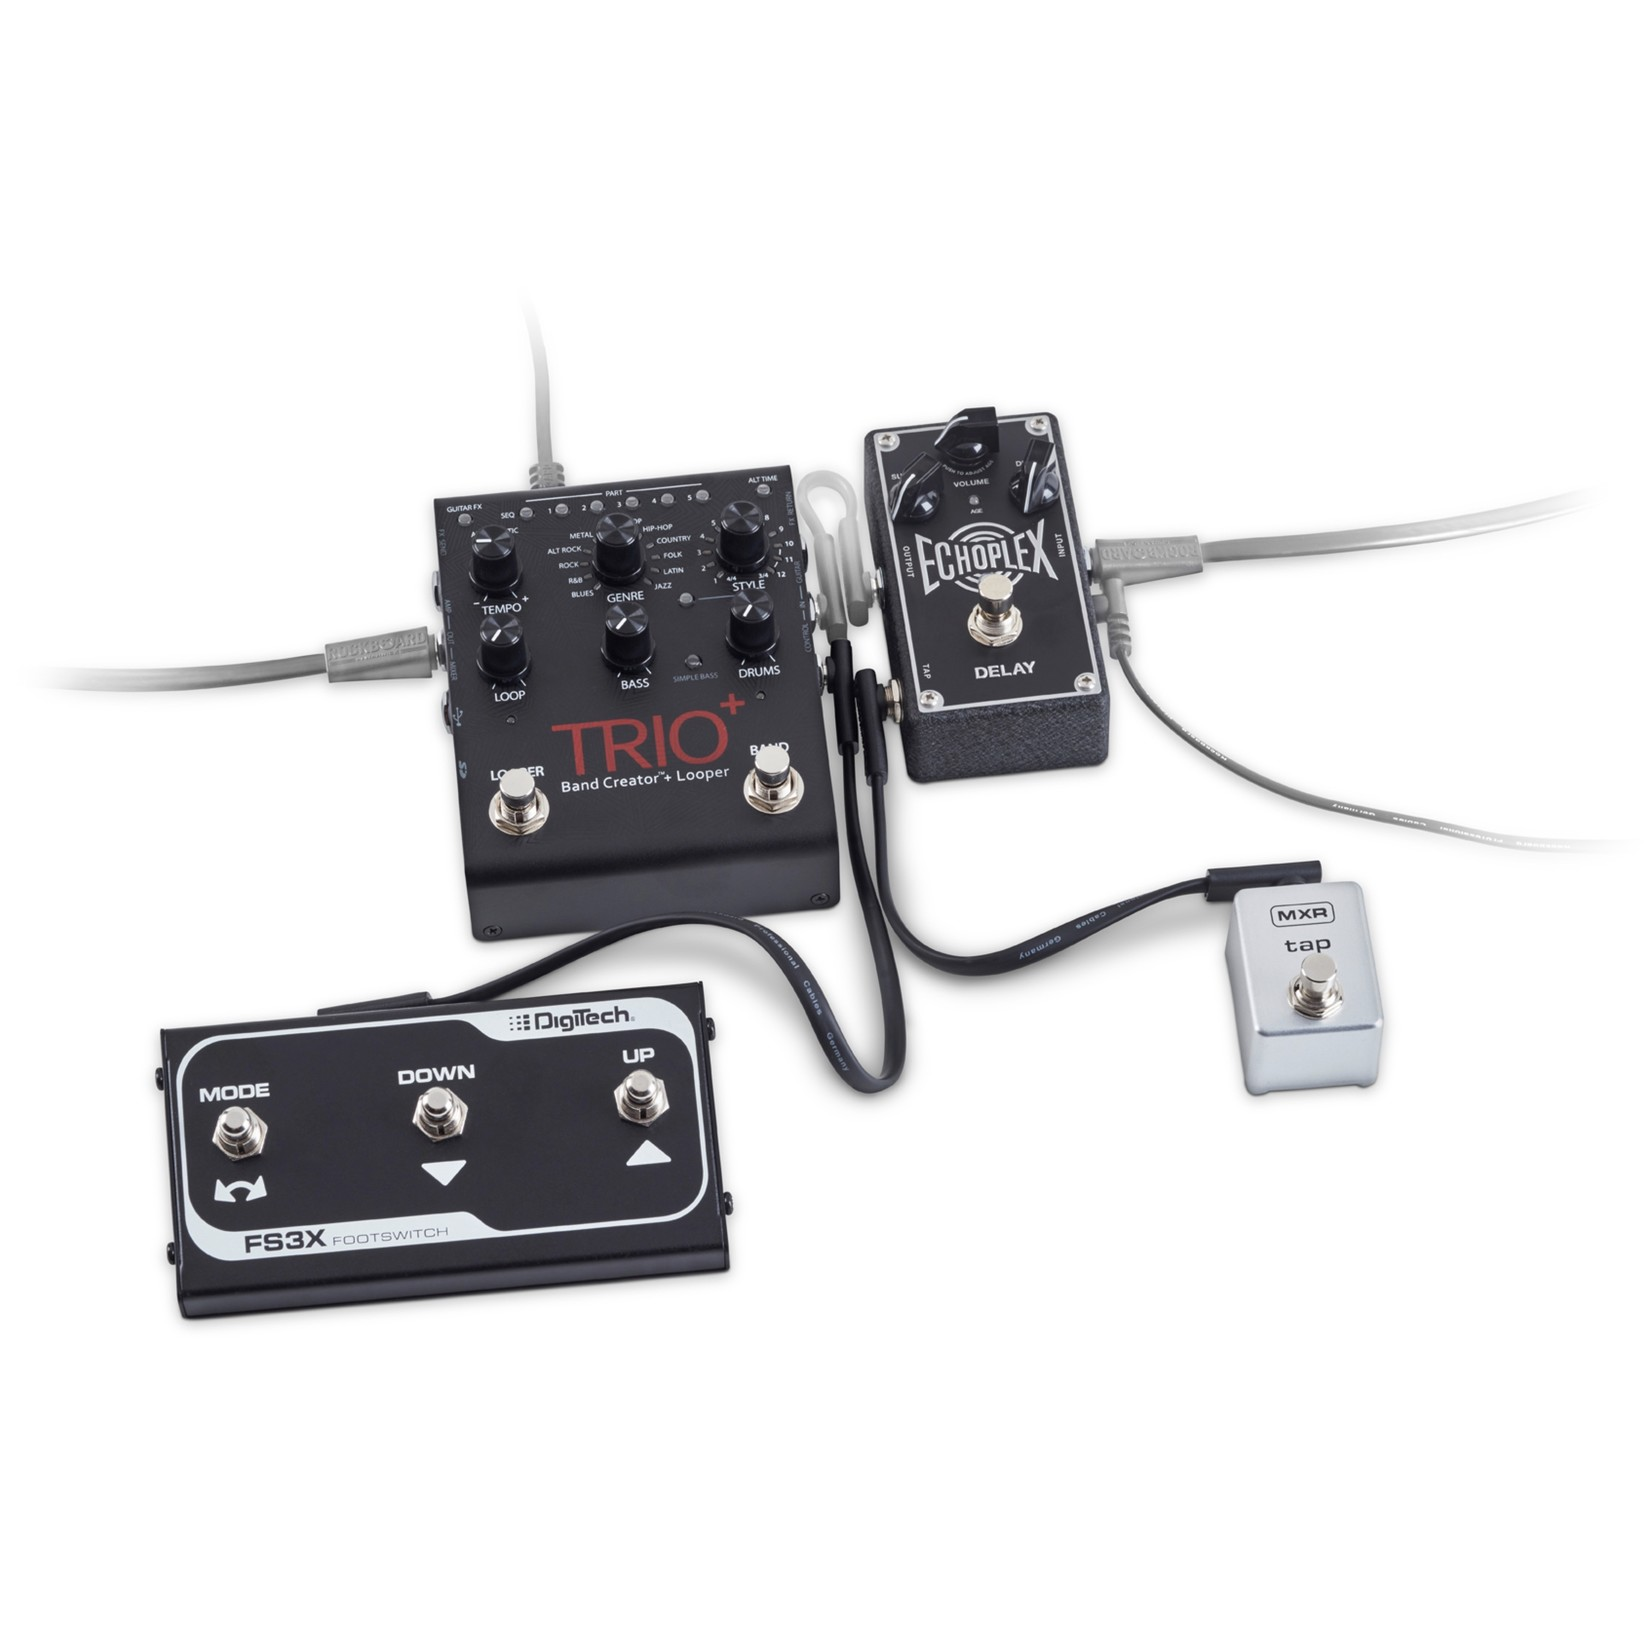 """Rockboard Rockboard Flat Patch TRS Cable, 30 cm / 11.81"""", Black, low profile, for switch & expression pedals"""